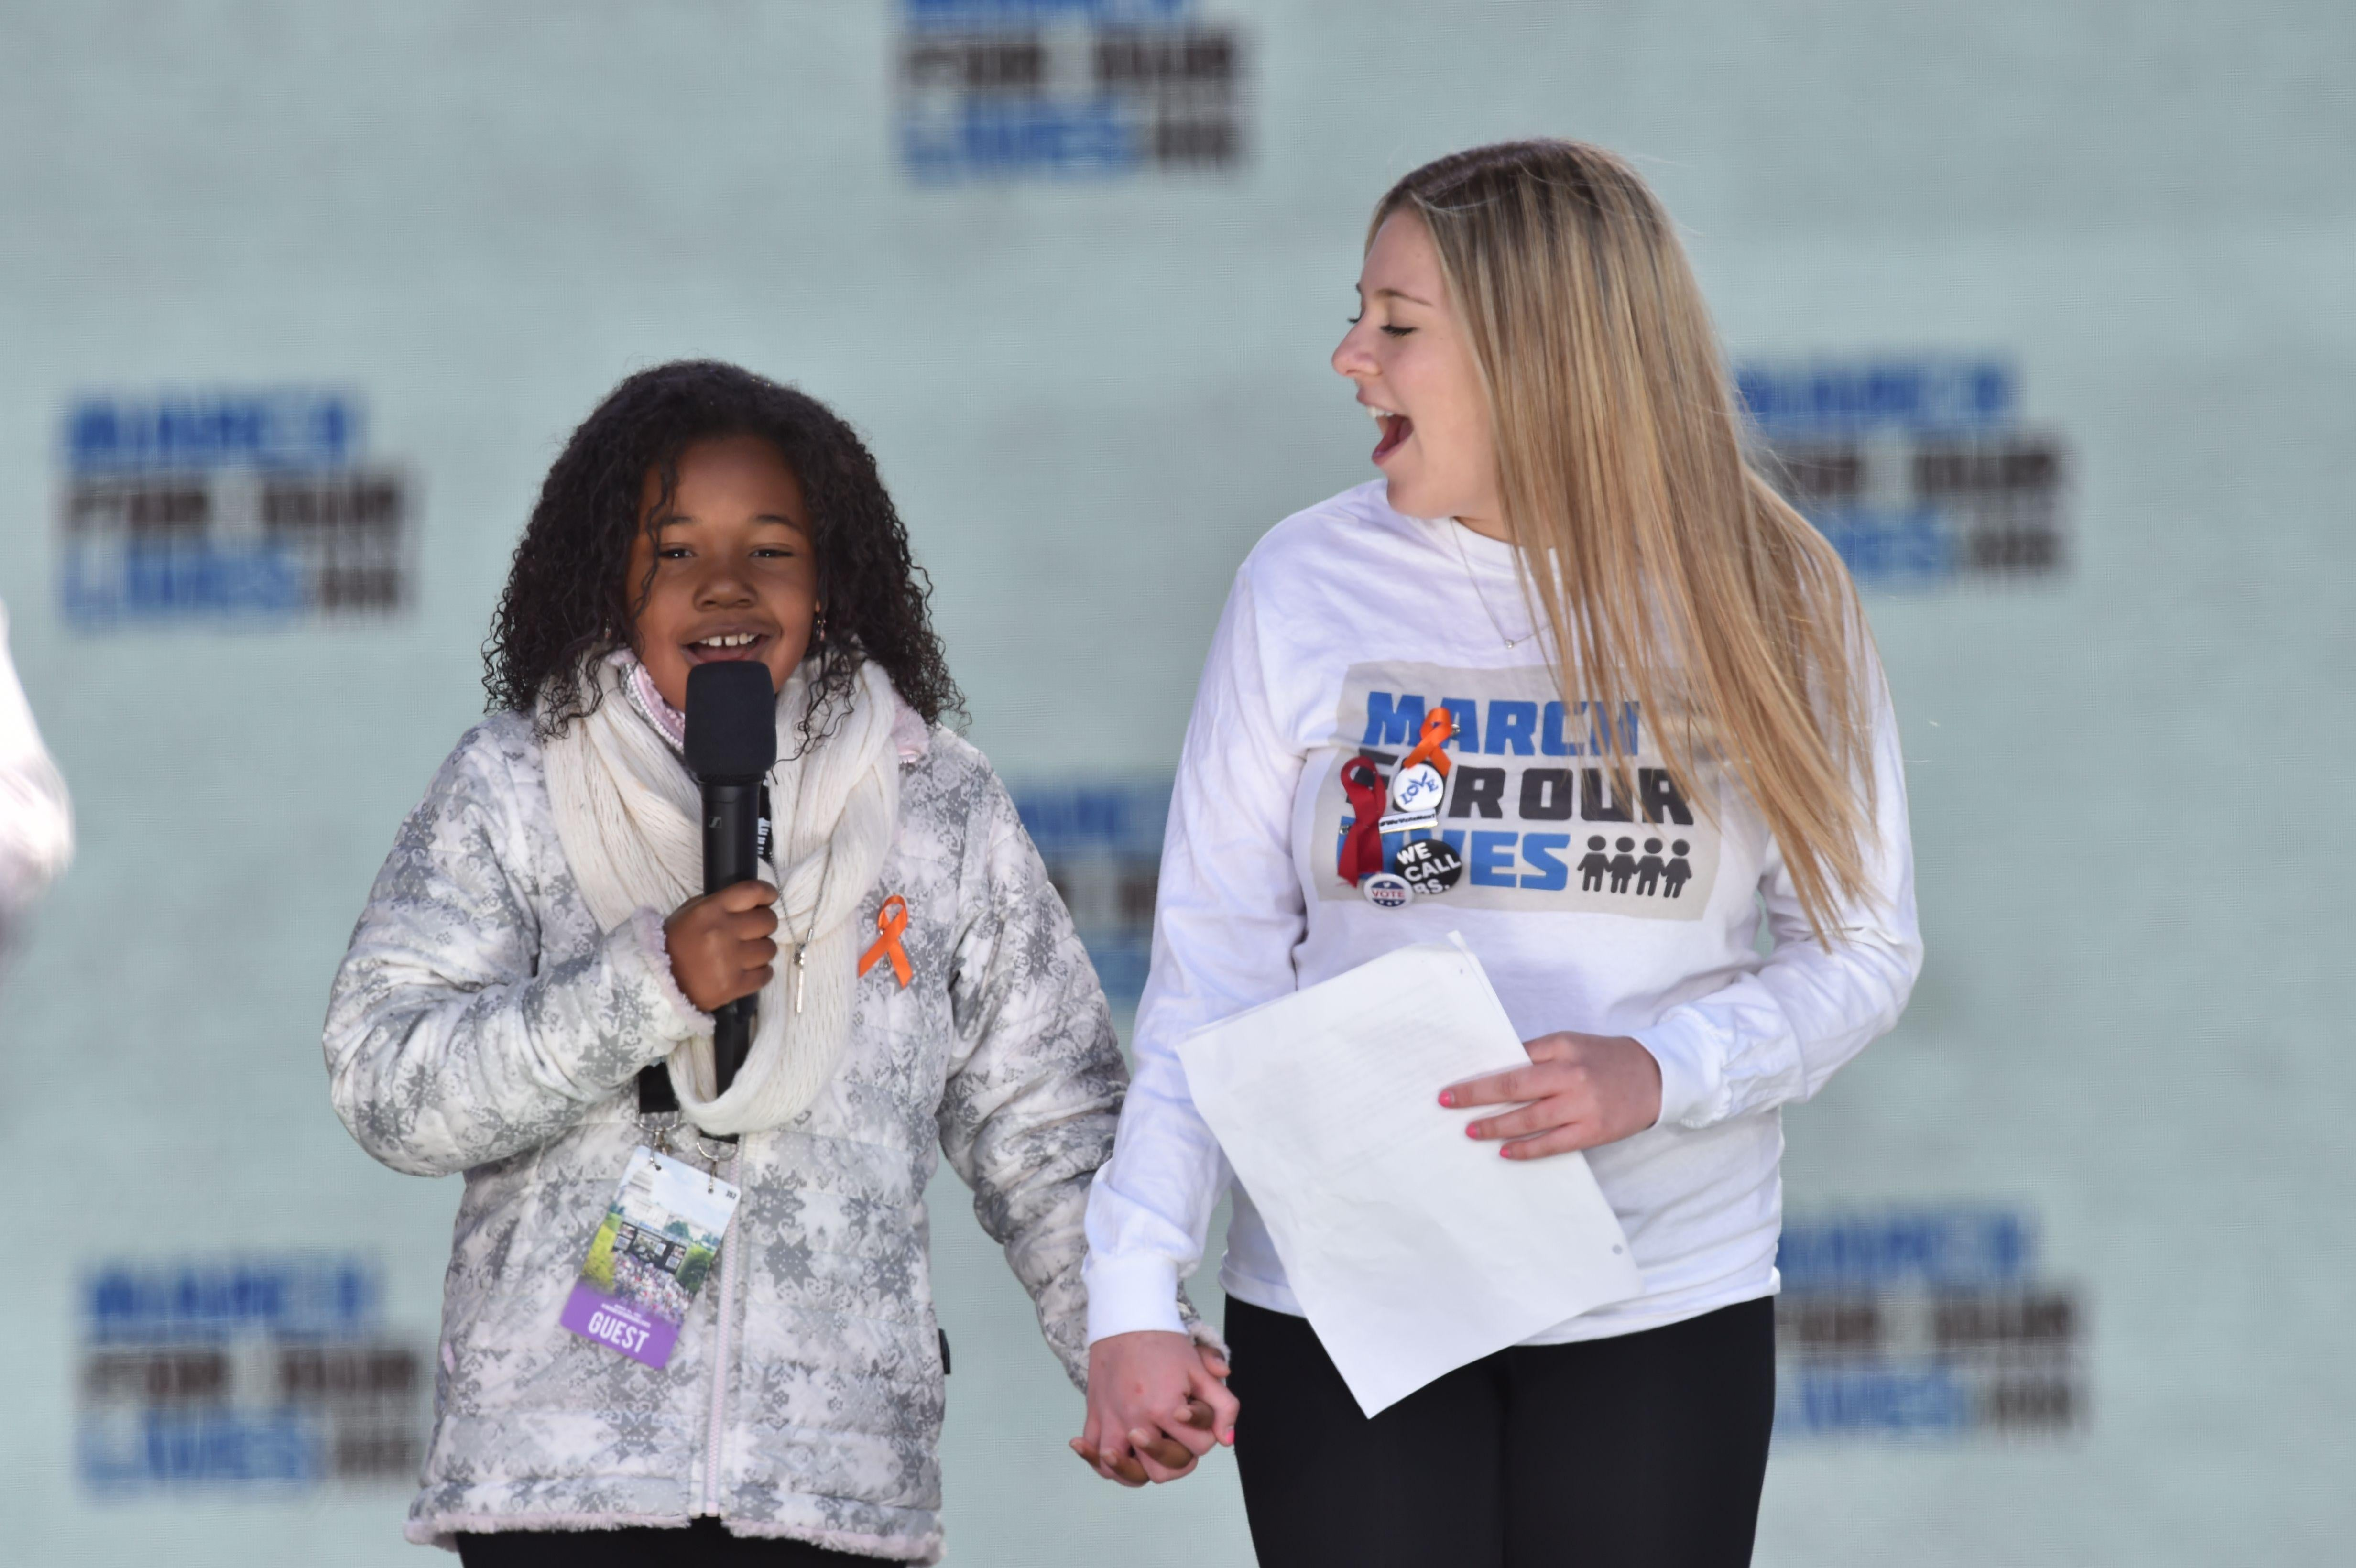 Martin Luther King Jr's granddaughter Yolanda Renee King speaks next to student Jaclyn Corin during the March for Our Lives Rally in Washington, D.C. on March 24, 2018.